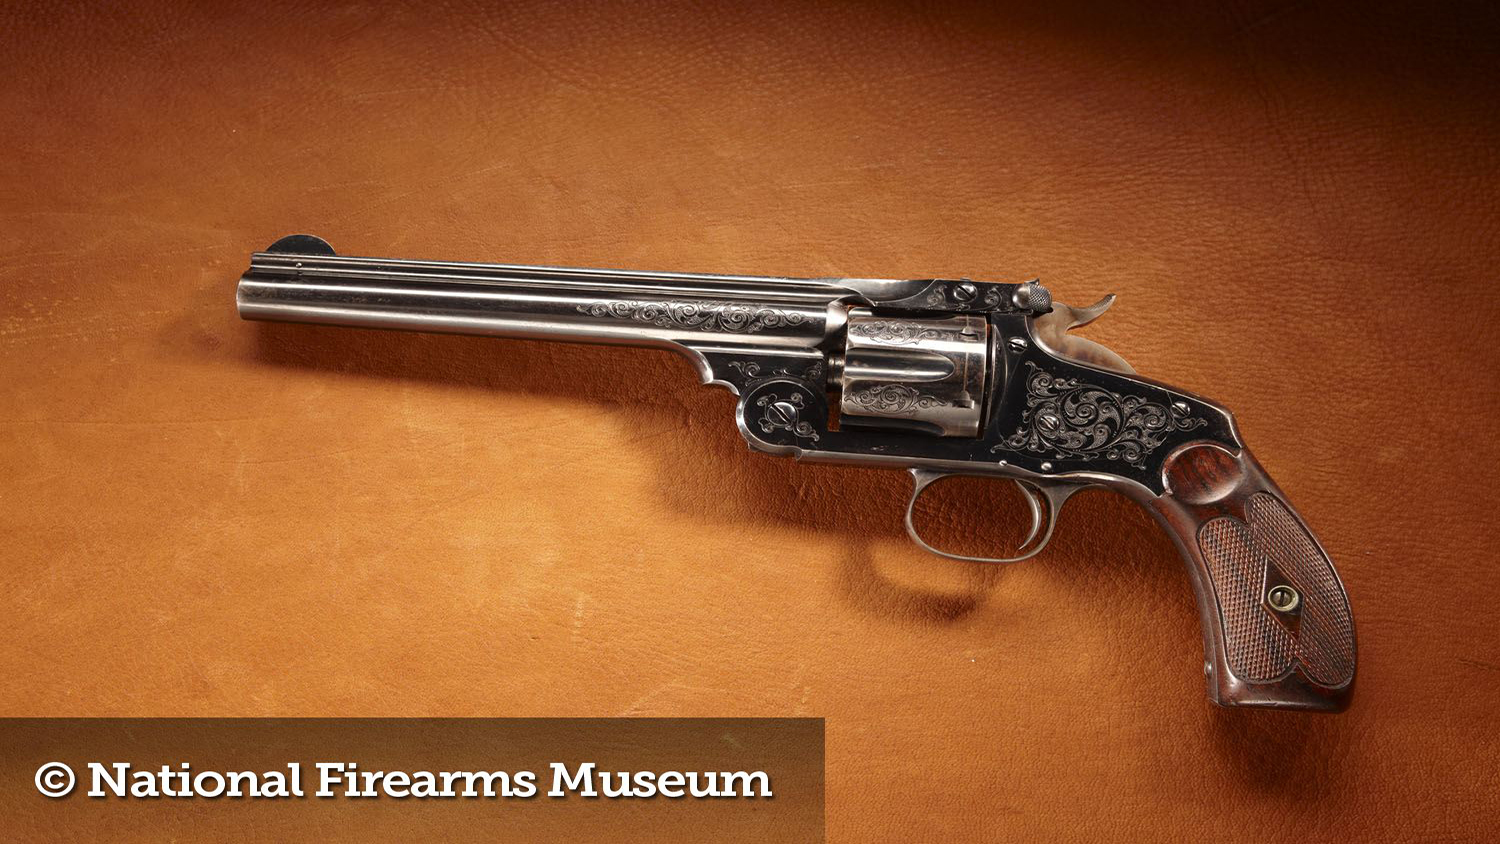 Teddy roosevelt guns to be displayed at nra national - Nra Blog Gun Of The Month Theodore Roosevelt S Smith Wesson New Model No 3 Revolver